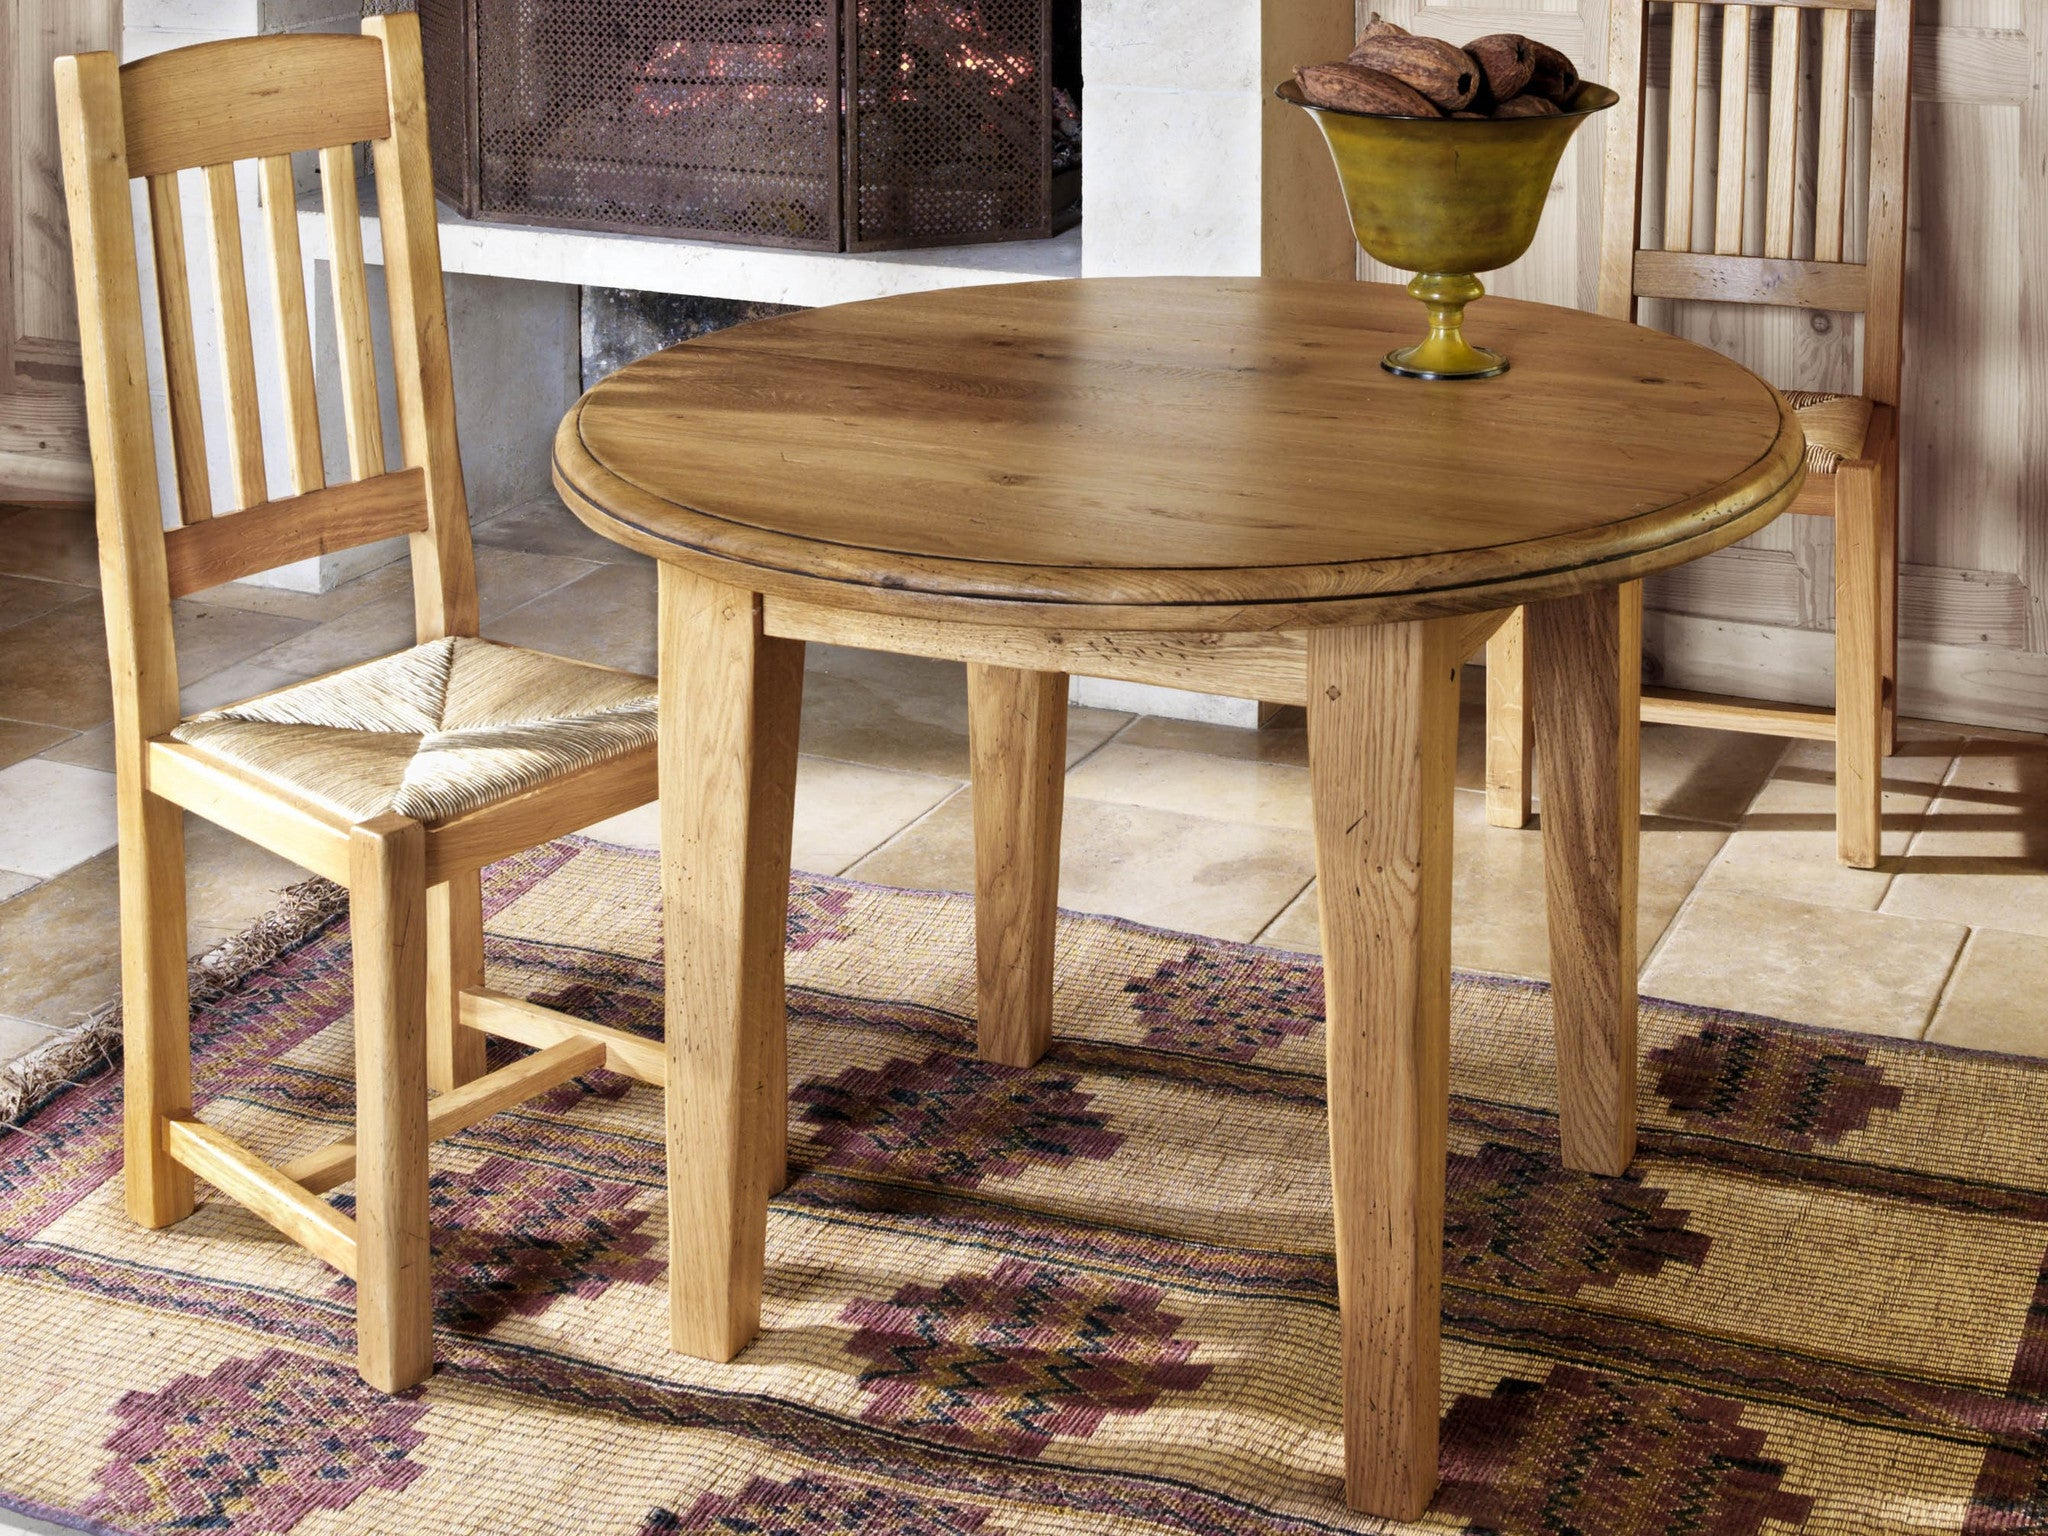 French oval dining table - French Valley Oak Dining Table Round Small Extending To Oval 105cm Diameter Extends To 175cm